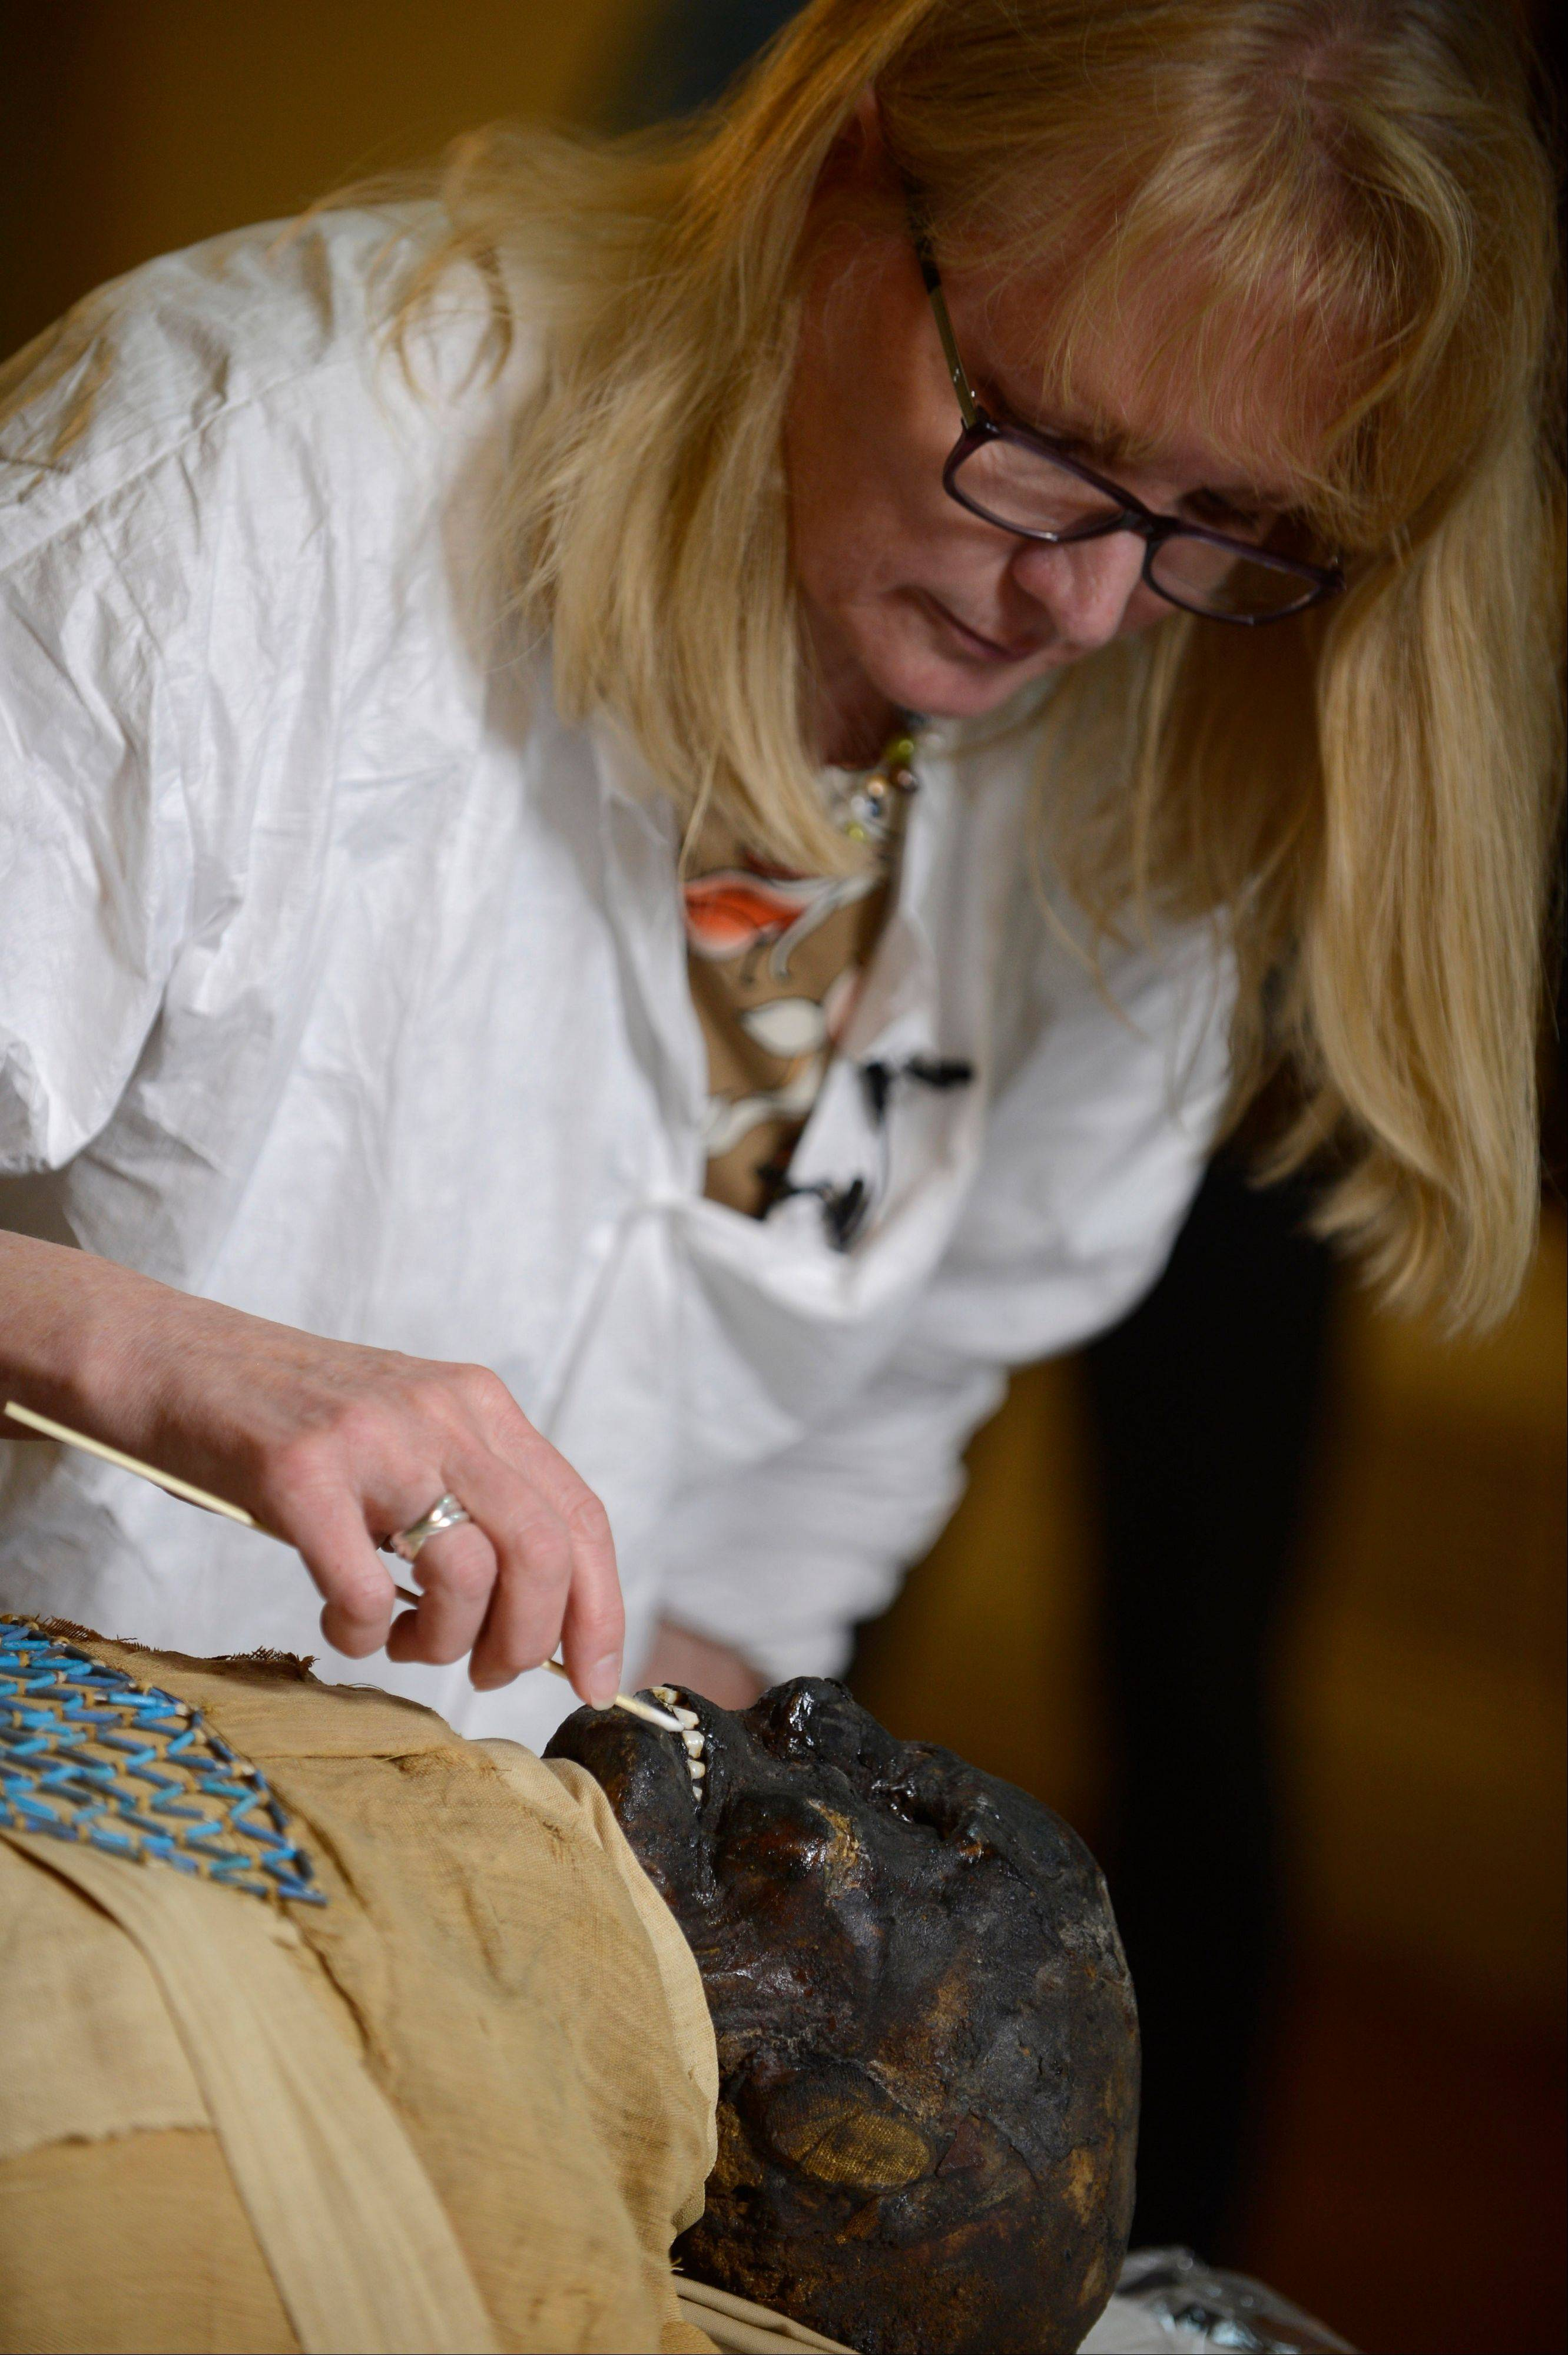 Mimi Leveque, a freelance conservator, cleans Padihershef, a 2,500-year-old Egyptian mummy at Mass General Hospital in Boston, on Friday.